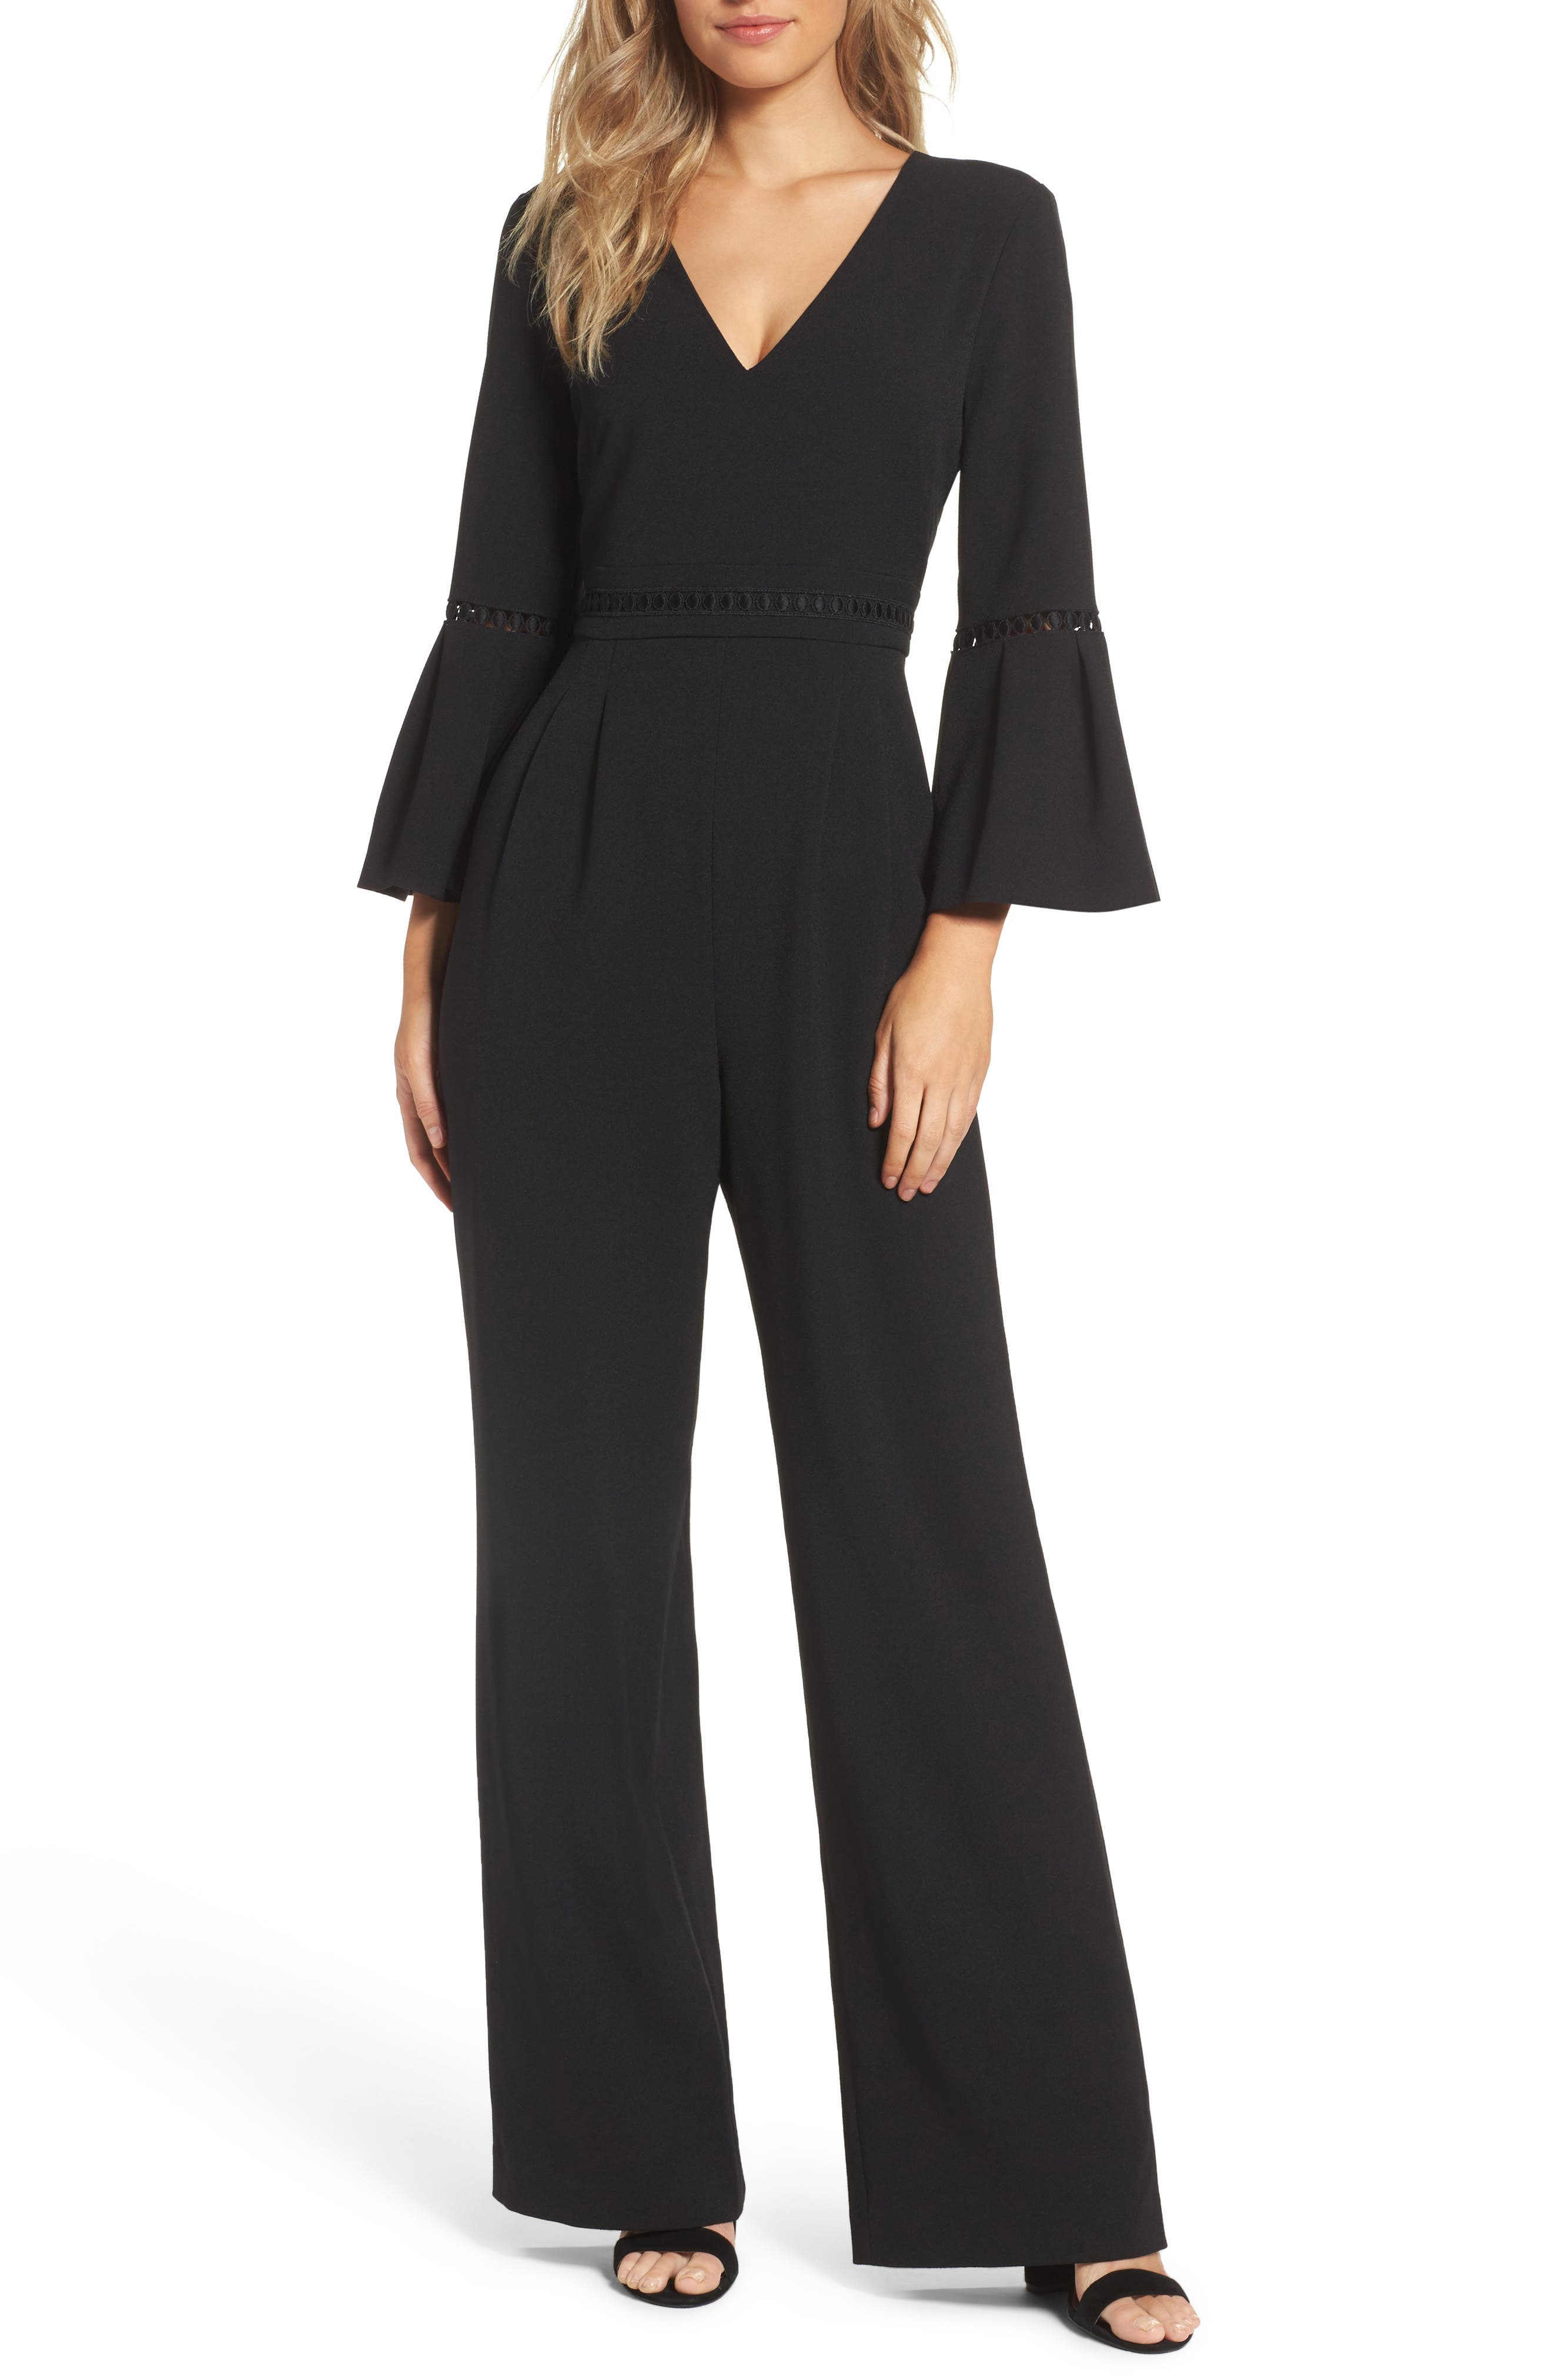 Jumpsuits with sleeves online dating